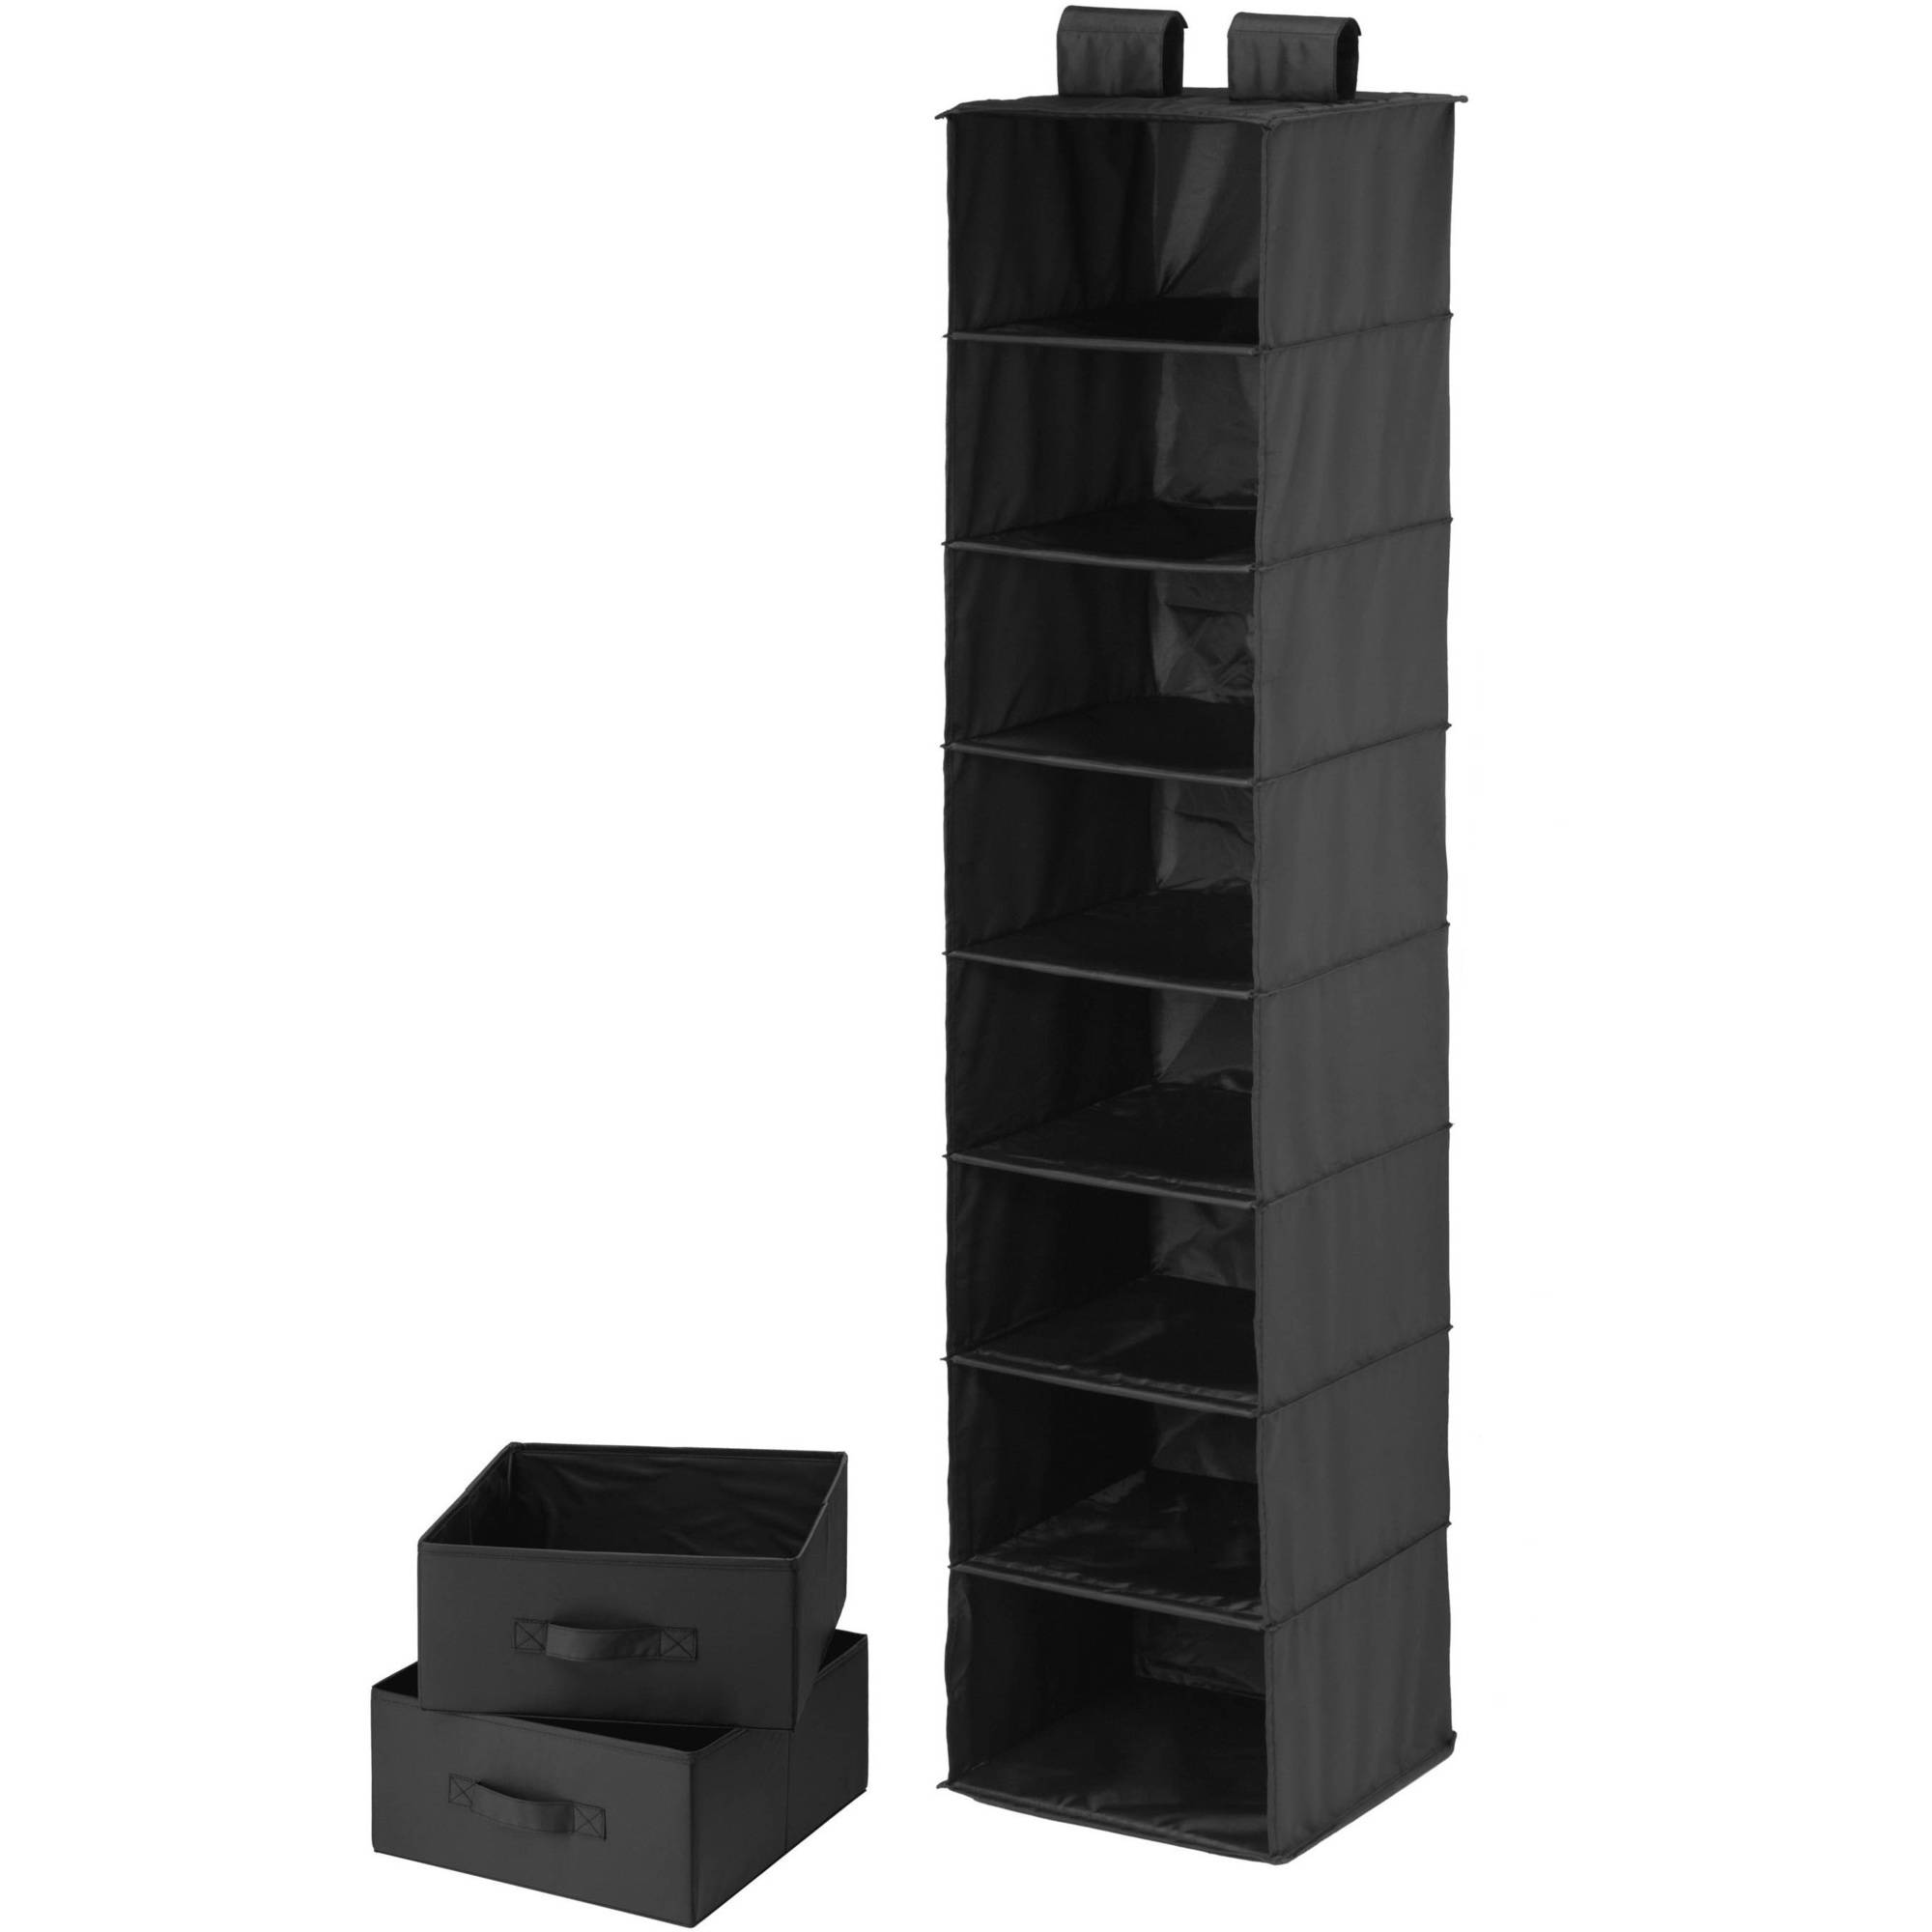 Honey-Can-Do 8-Shelf Organizer with 2 Drawers, Black Polyester by Honey Can Do